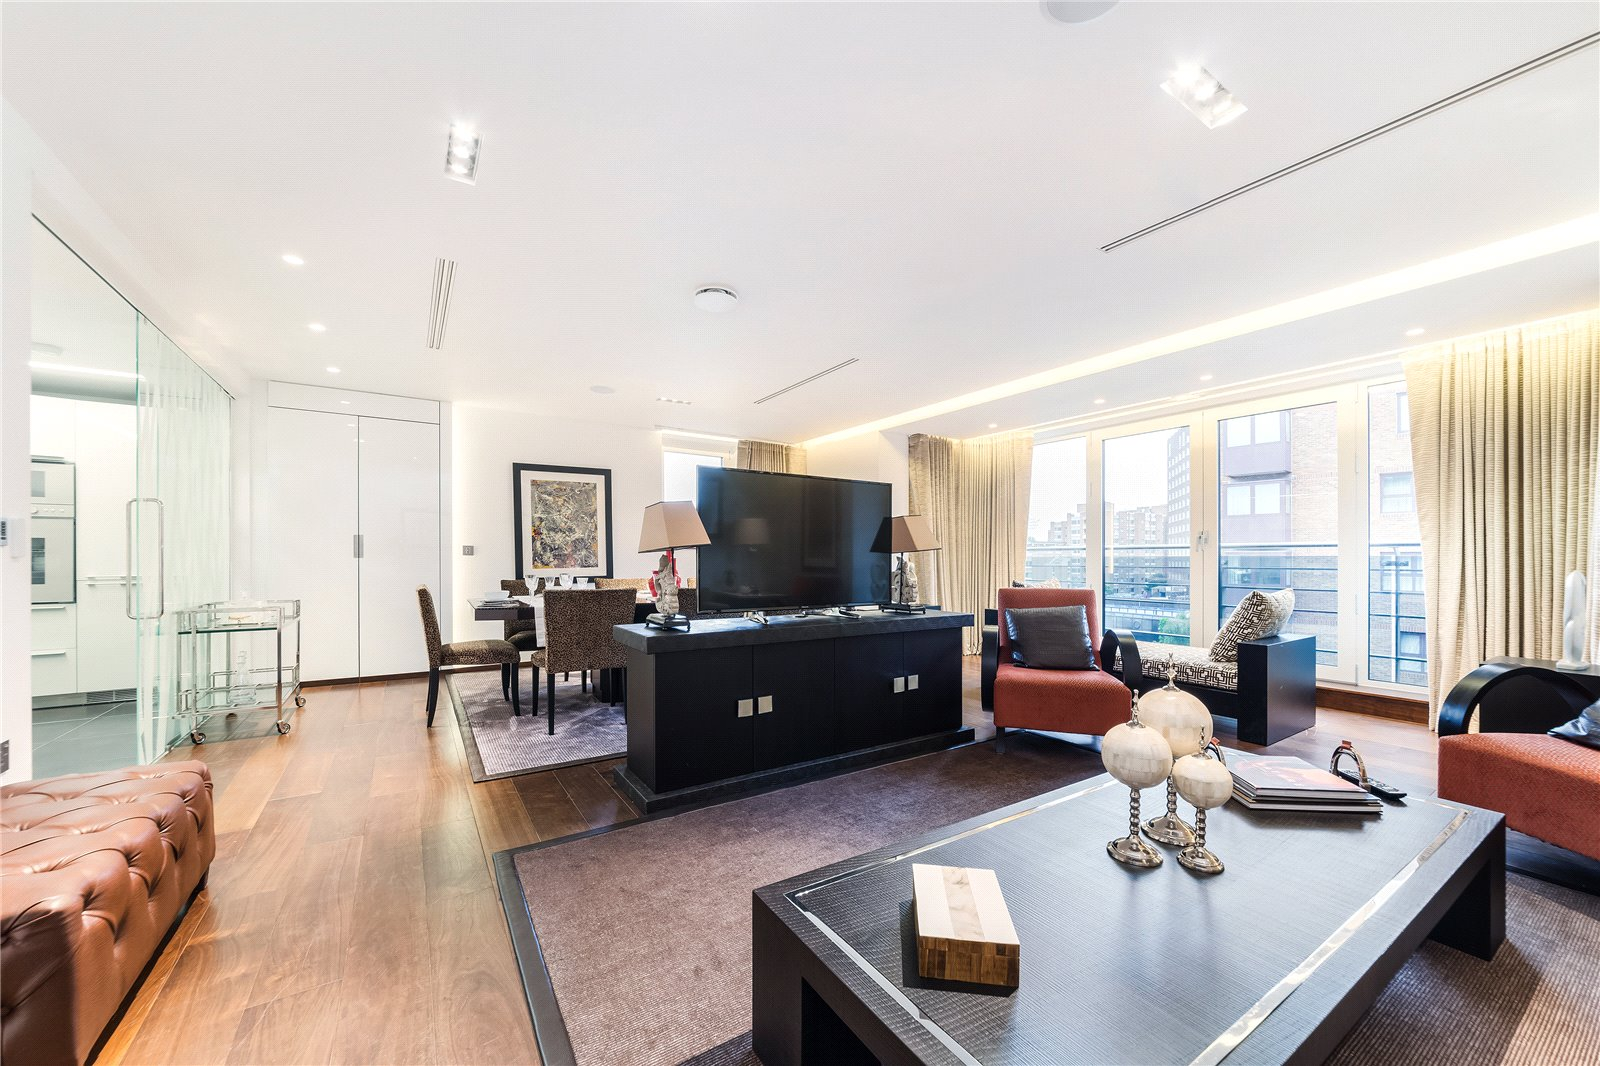 Apartment for Rent at Park Road, St John's Wood, London, NW8 Park Road, St John's Wood, London, NW8